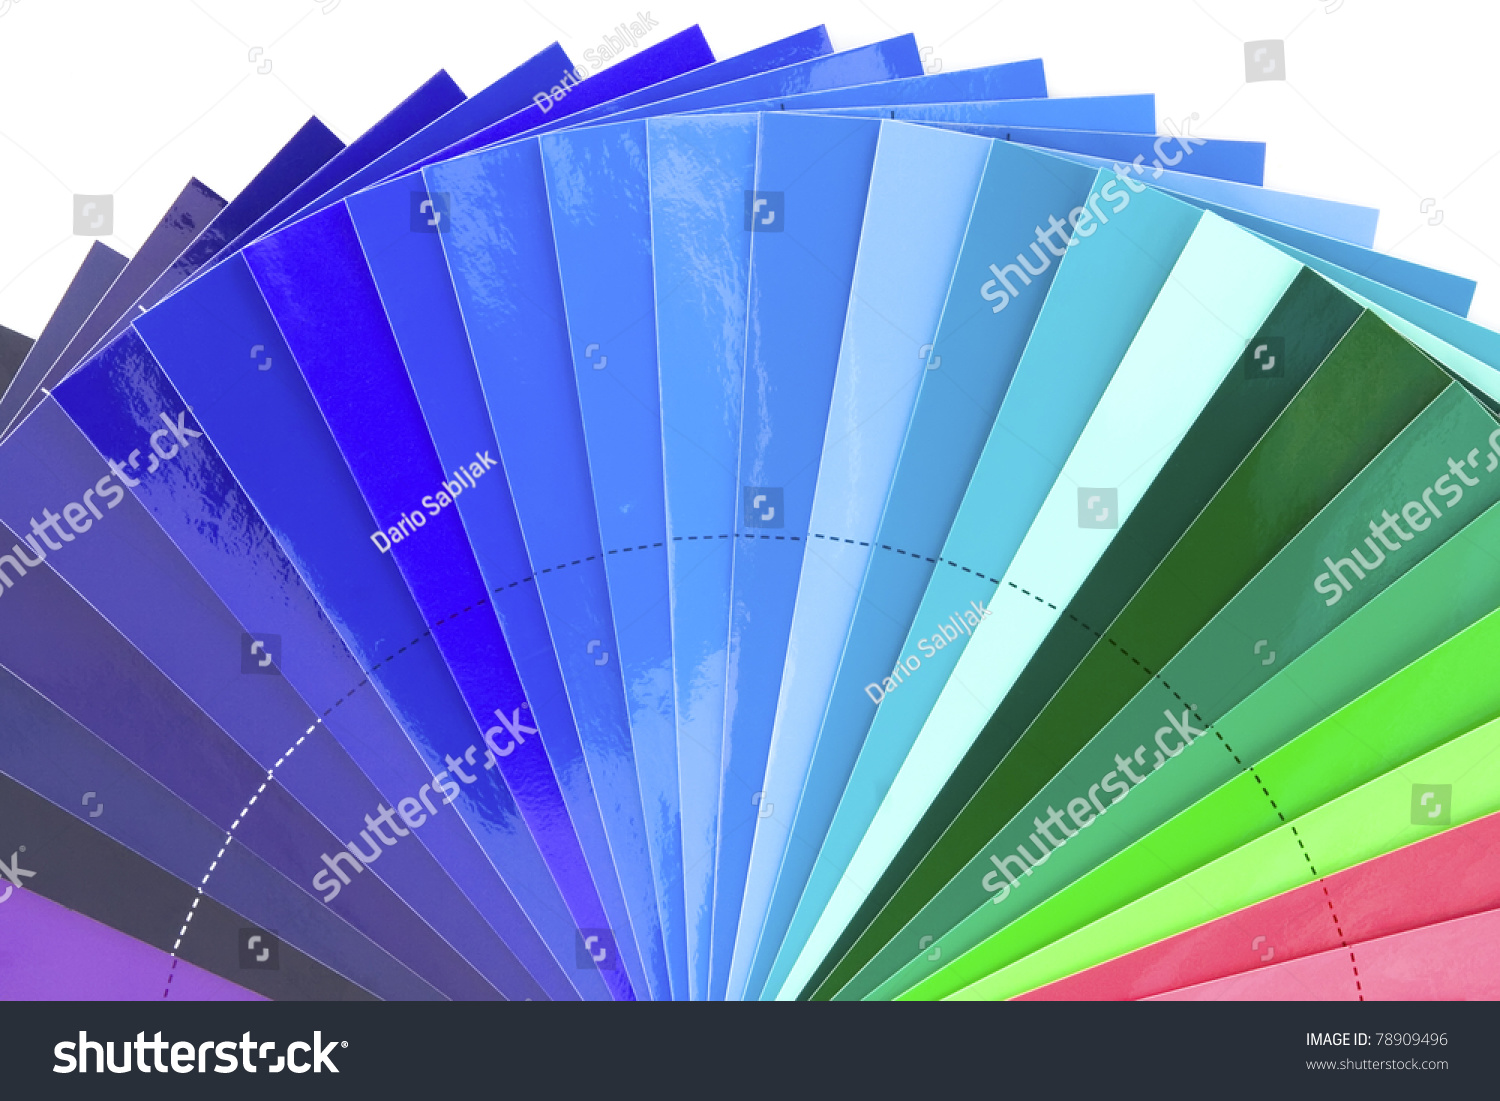 Green blue color chart scale isolated stock photo 78909496 green to blue color chart scale isolated on white background nvjuhfo Image collections